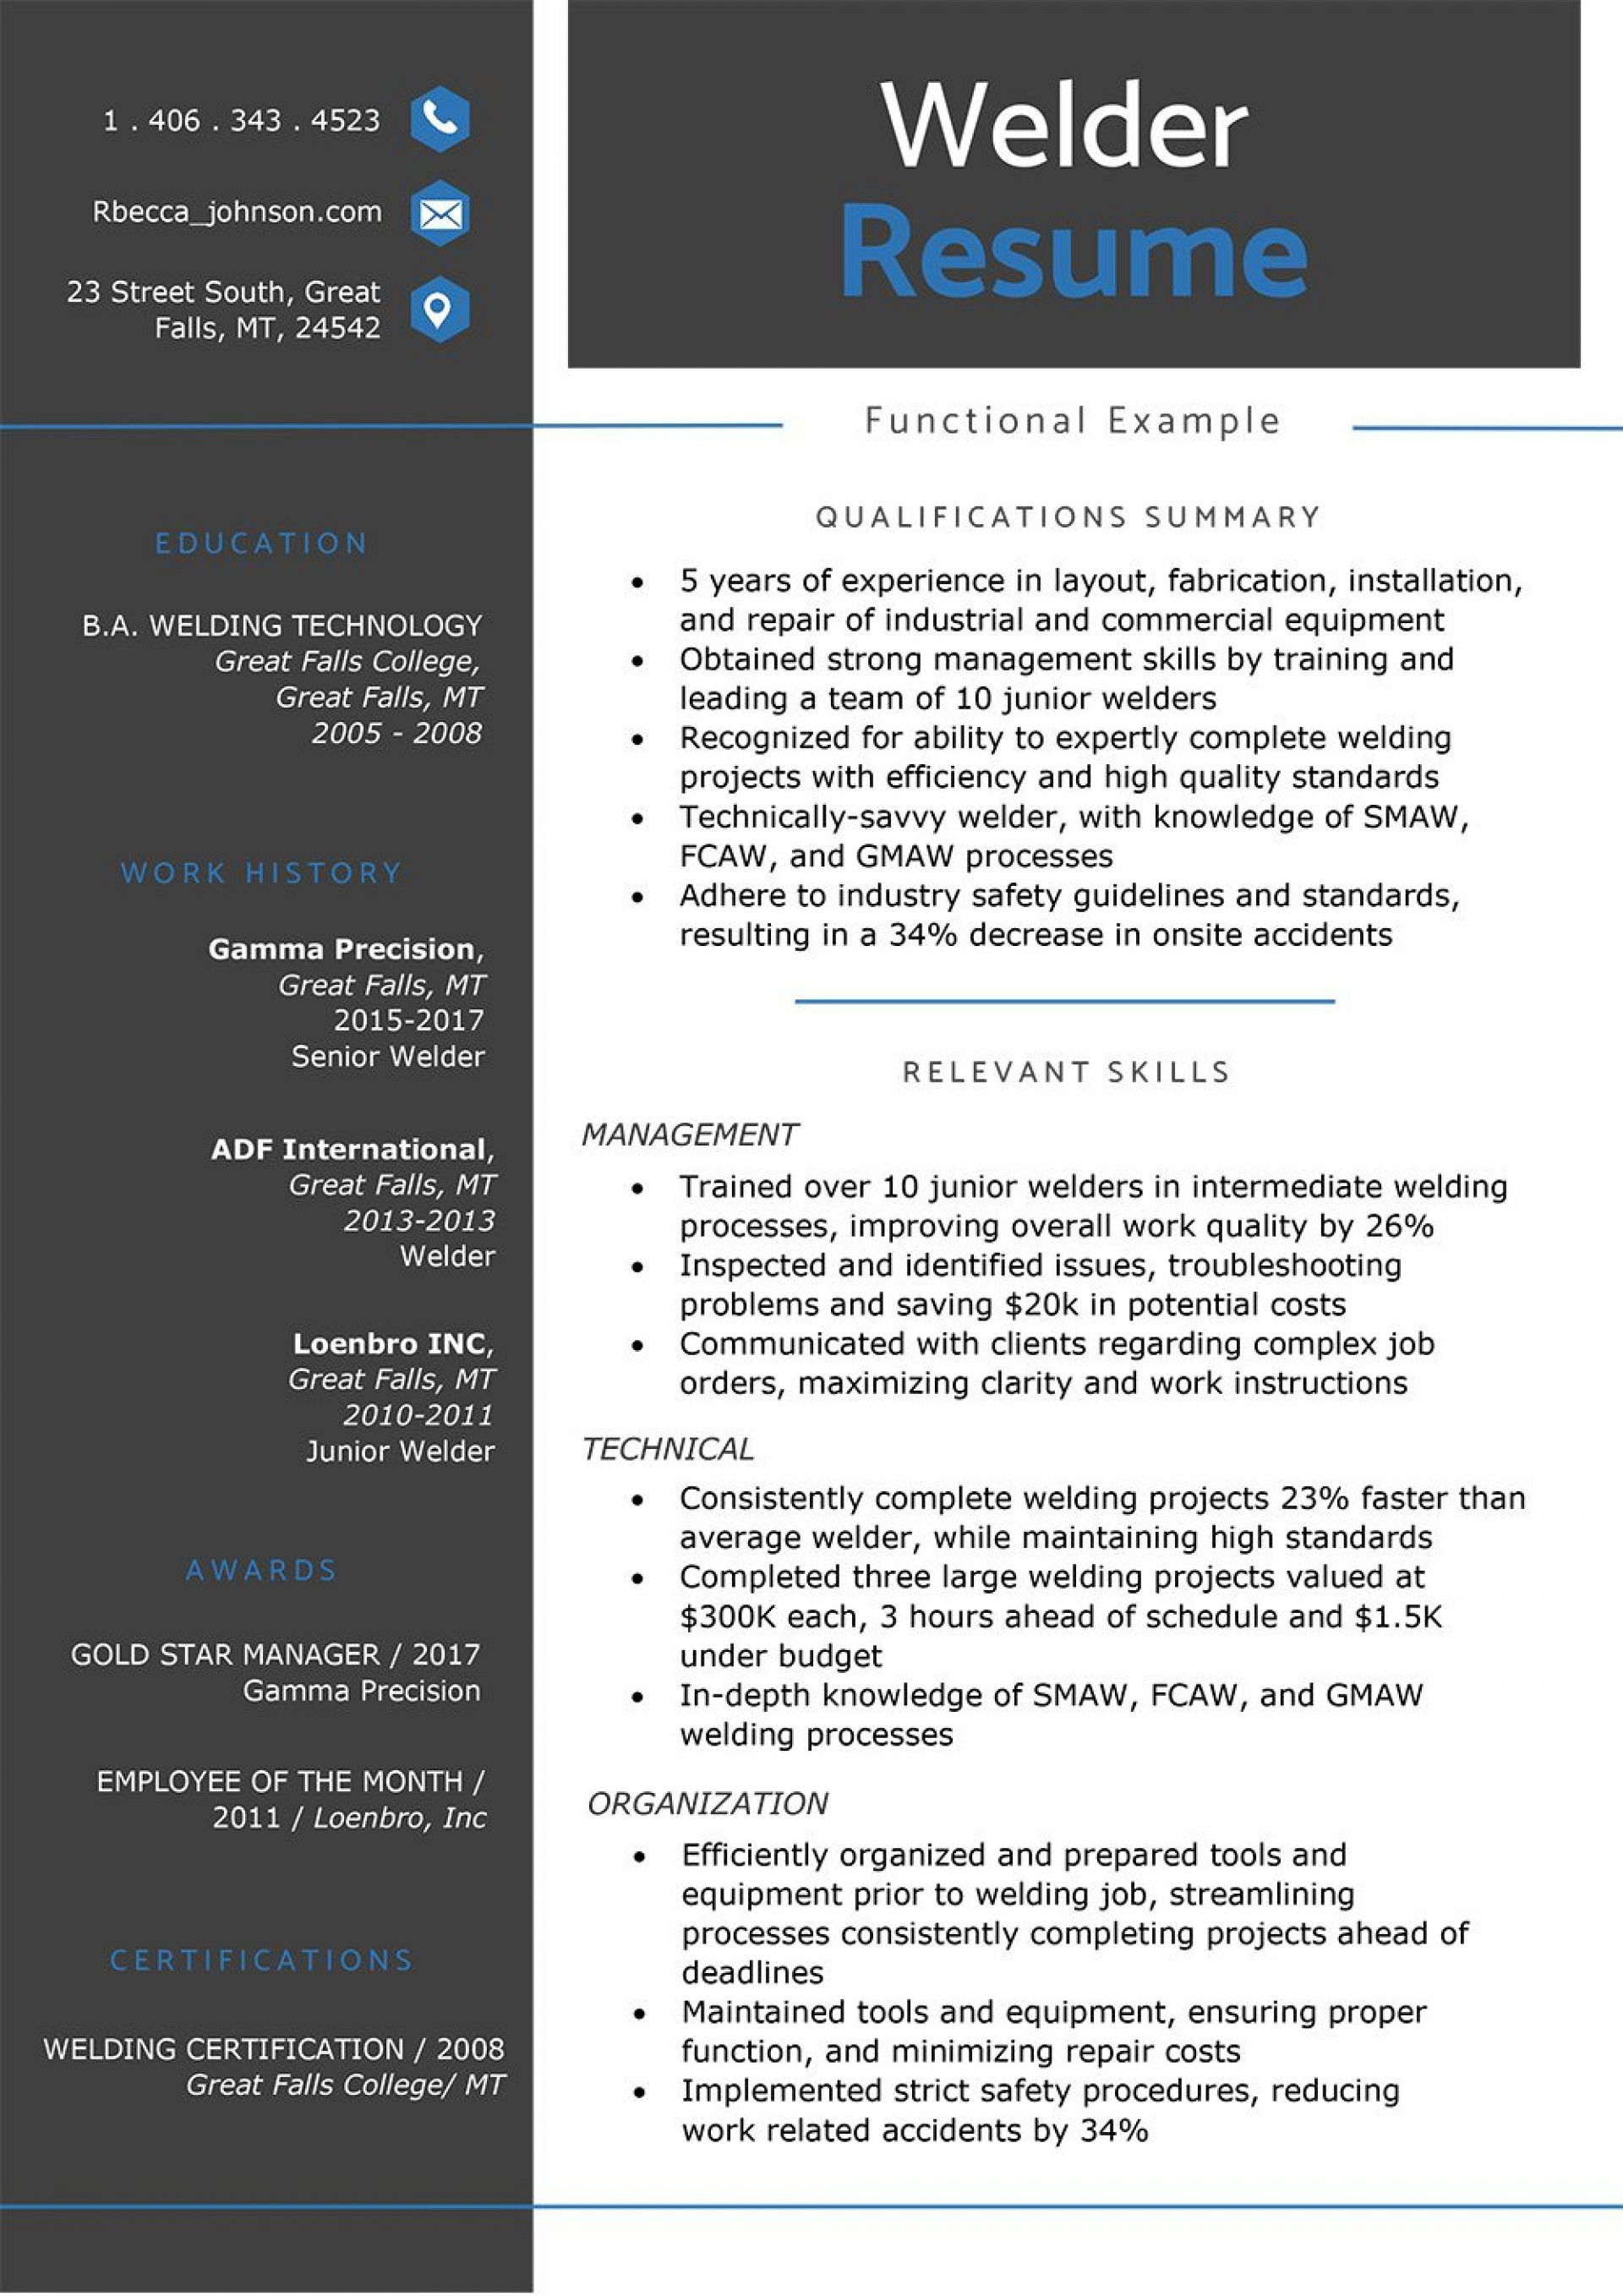 008 Awful Functional Resume Template Free Design 1920